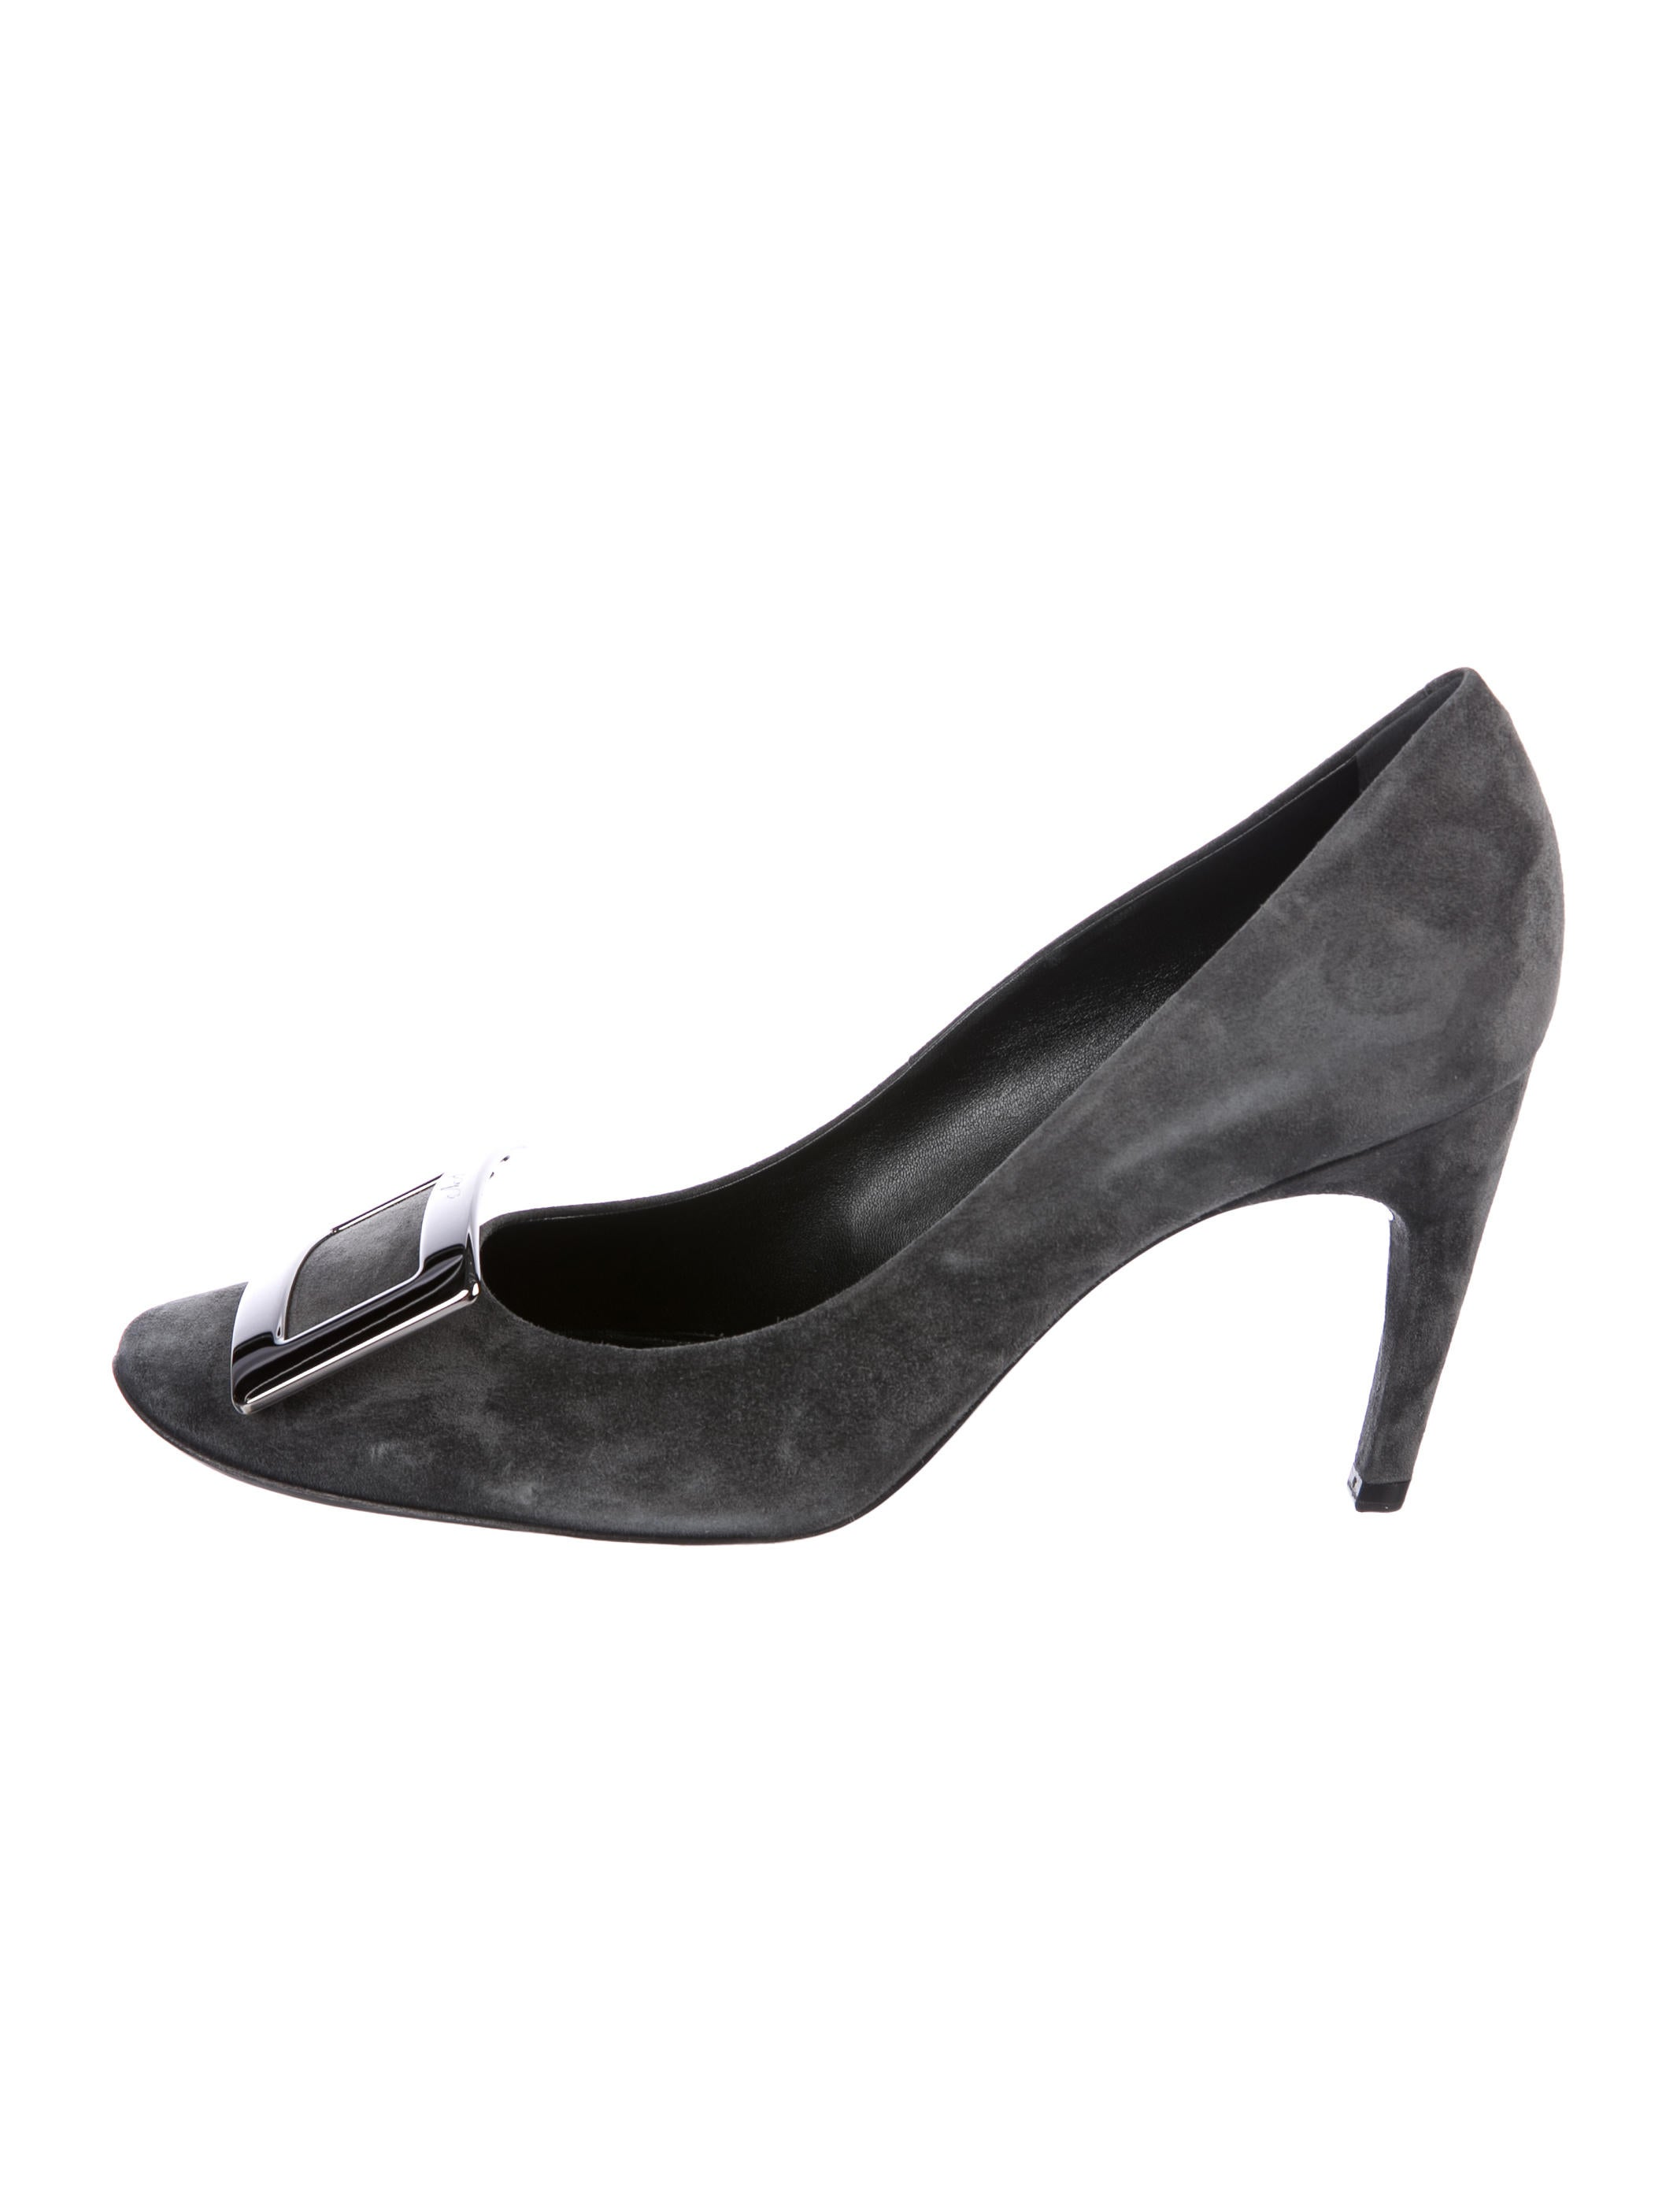 Roger Vivier Buckle-Accented Suede Pumps w/ Tags cheap sale geniue stockist kABh7pC